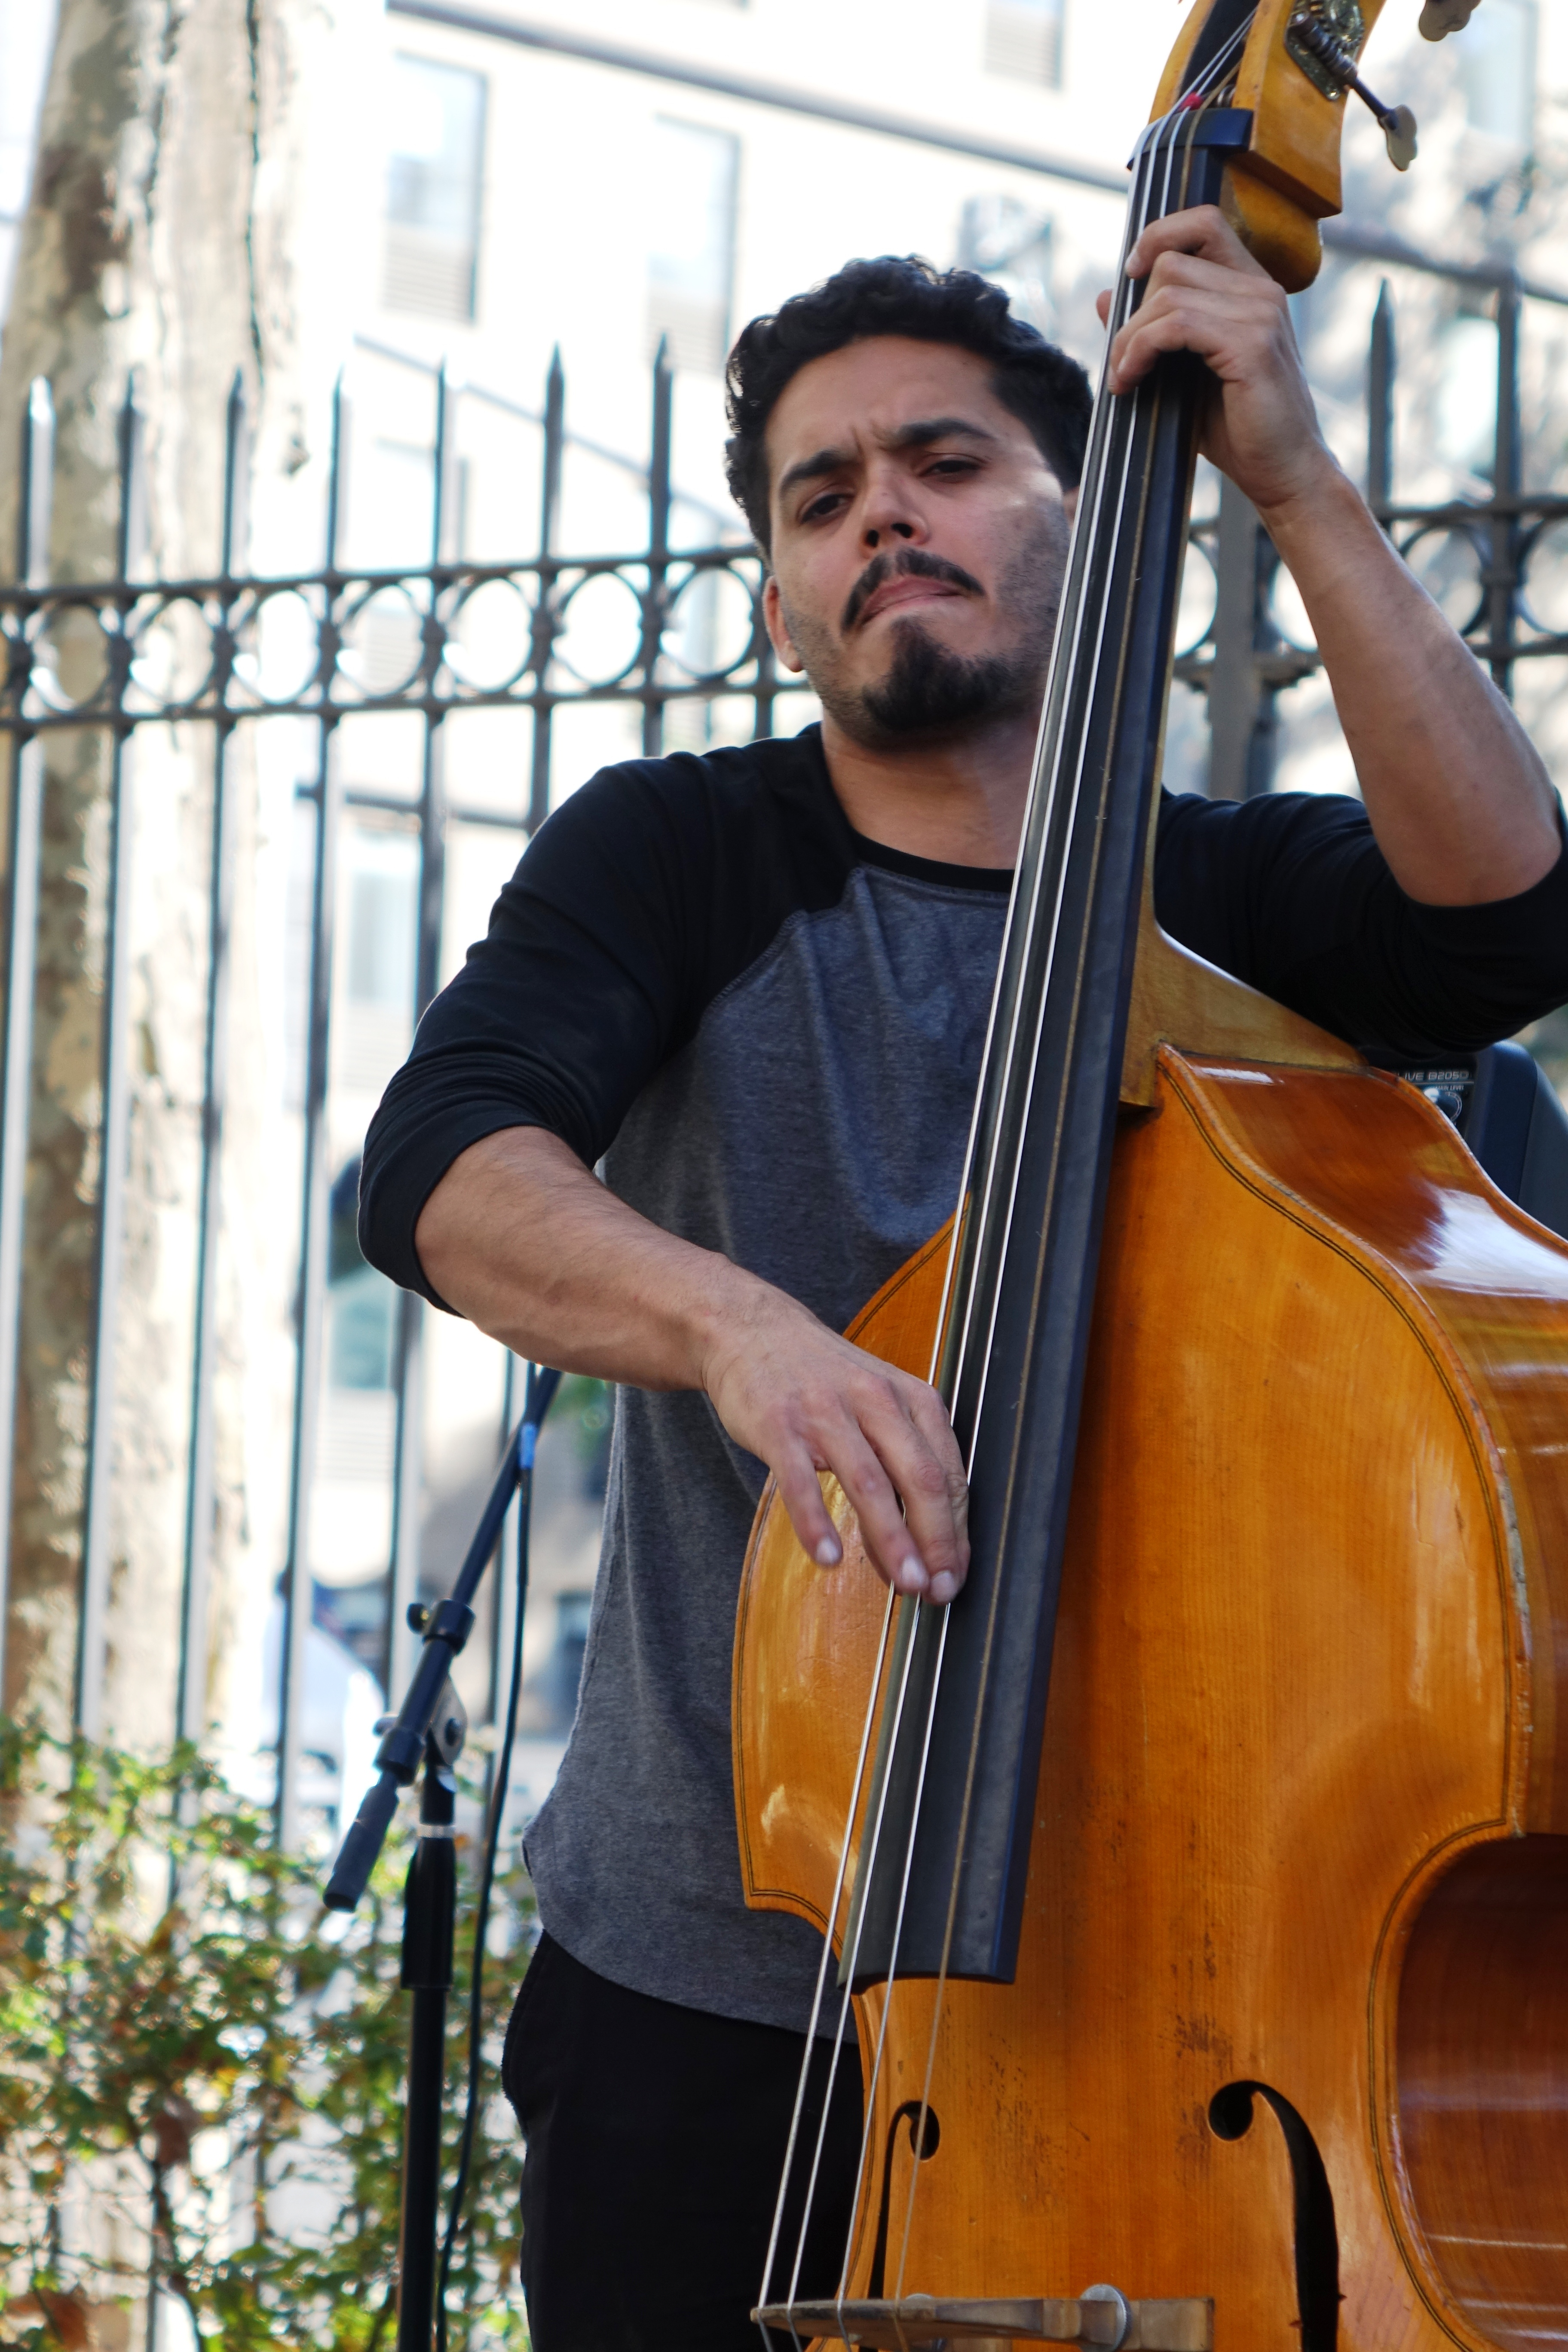 Brandon Lopez at First Street Green, NYC in October 2017